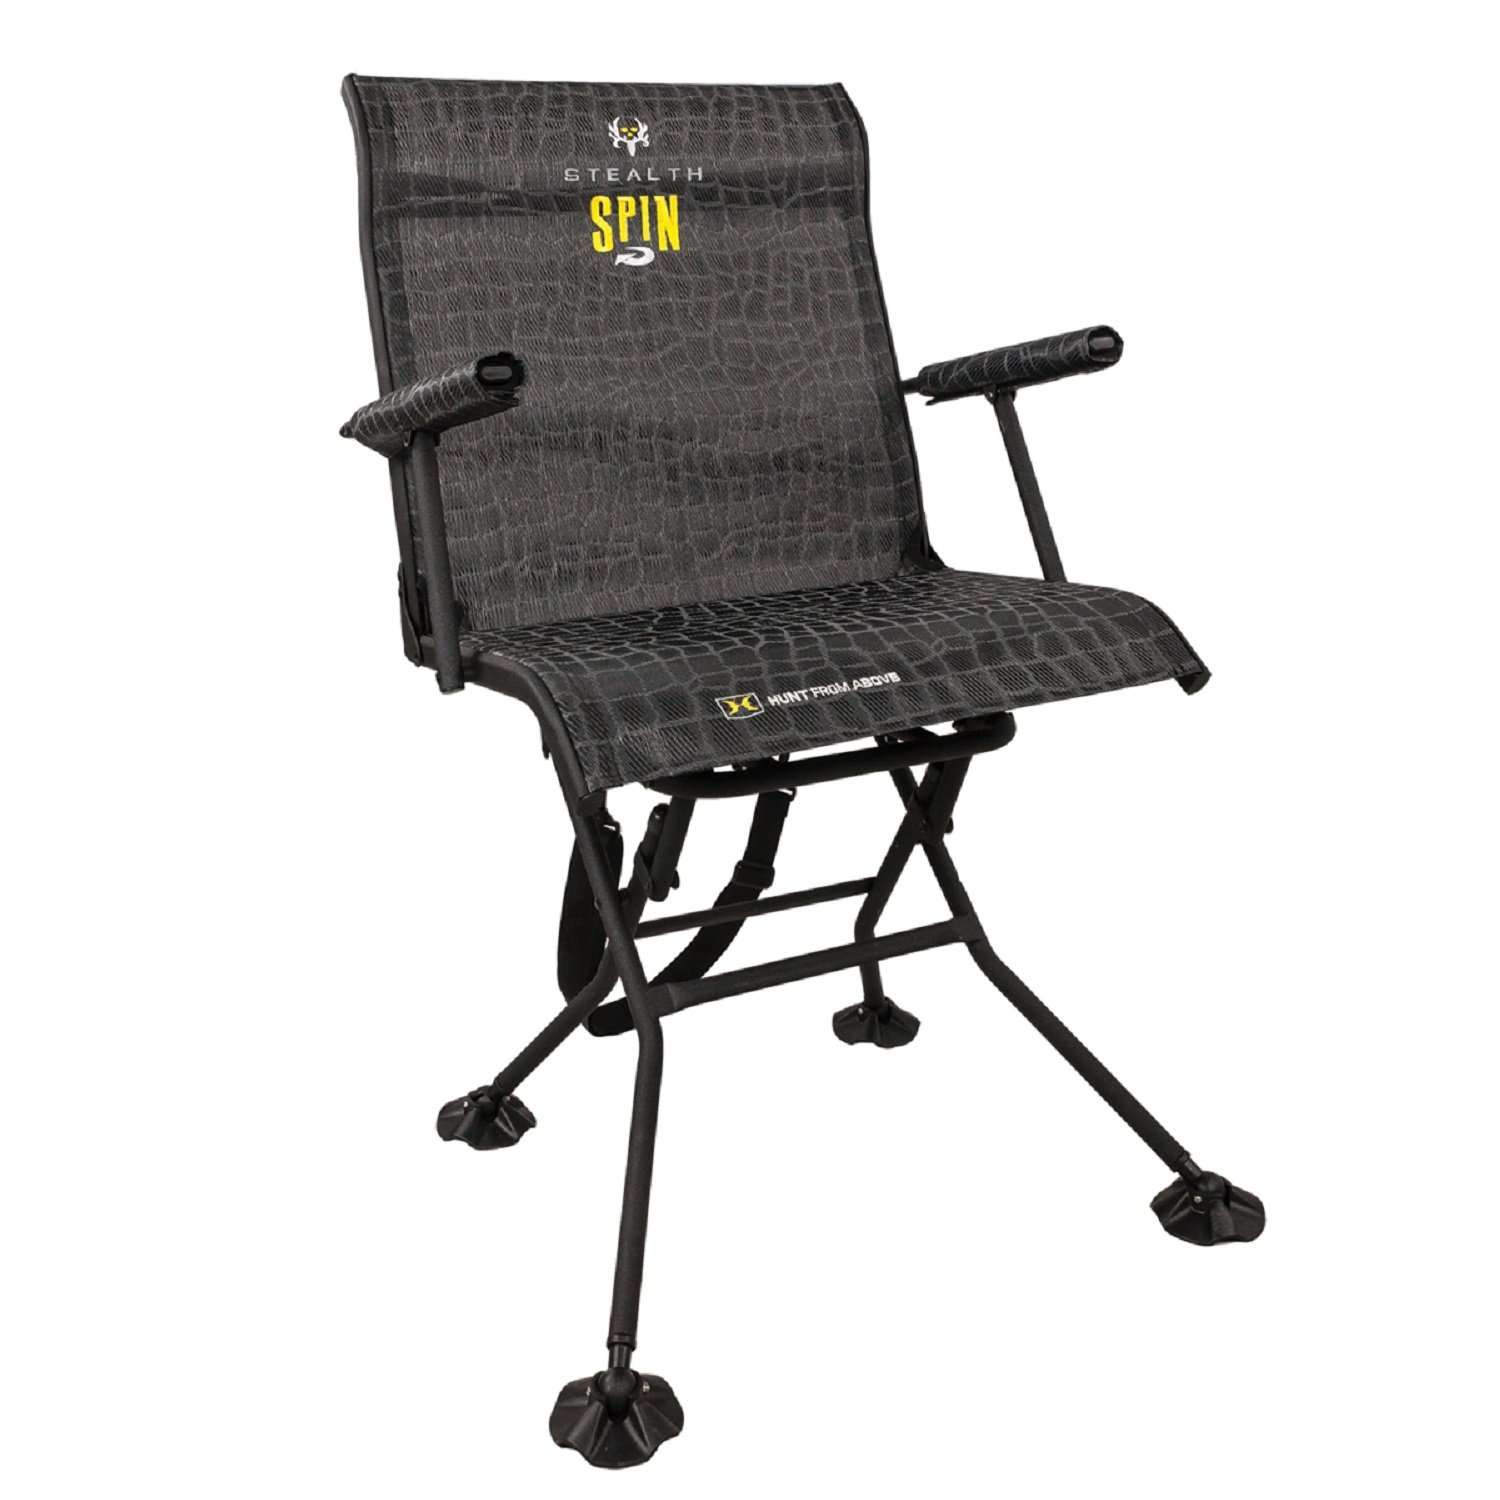 Amazon Hawk Stealth Spin Chair Silent fortable